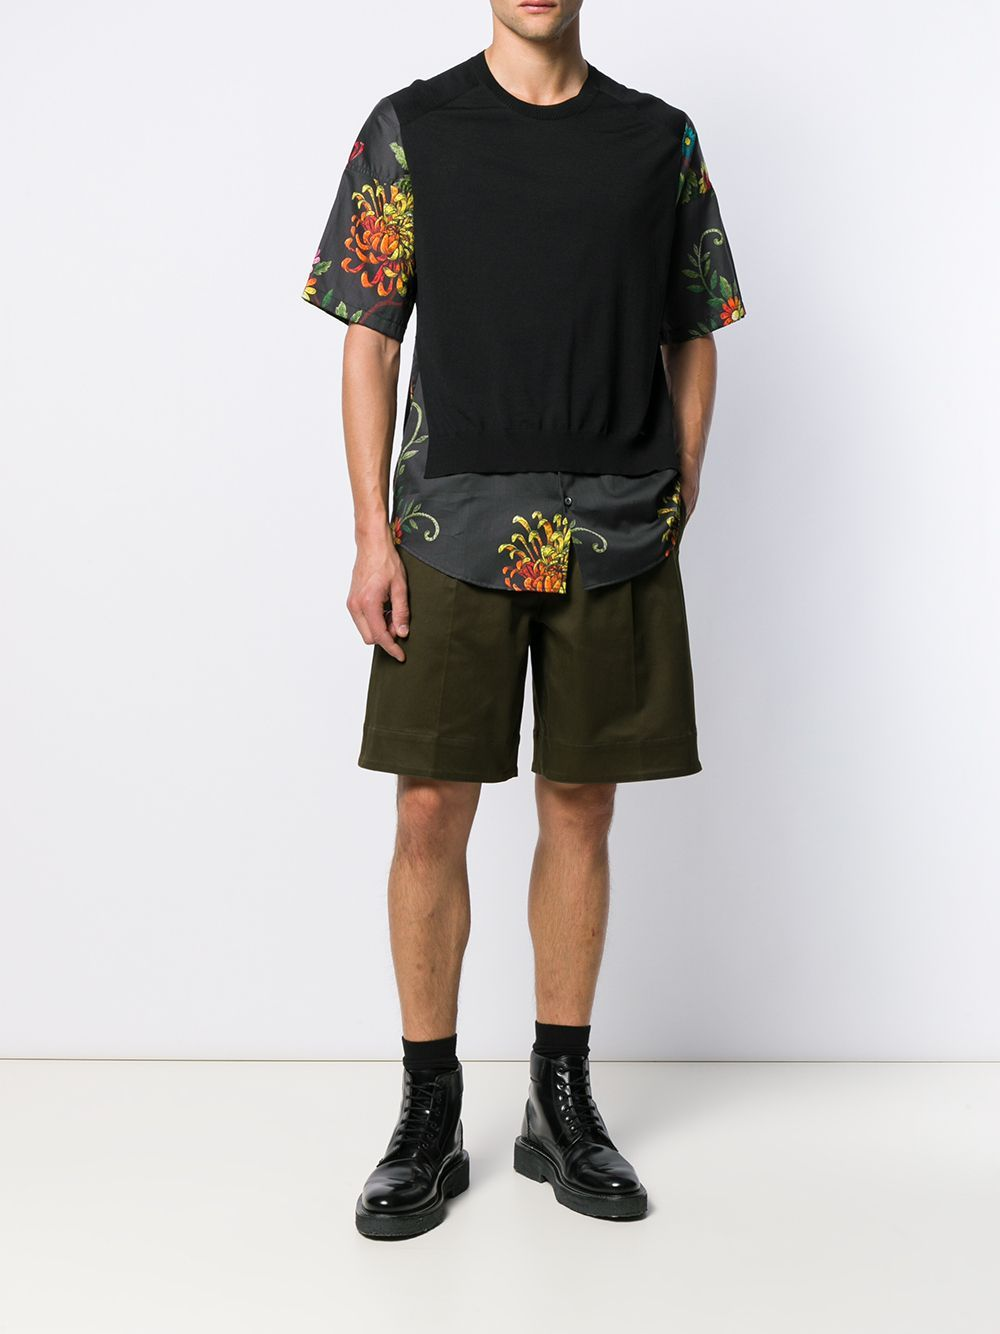 DSQUARED2 floral sleeve t-shirt - Maison De Fashion